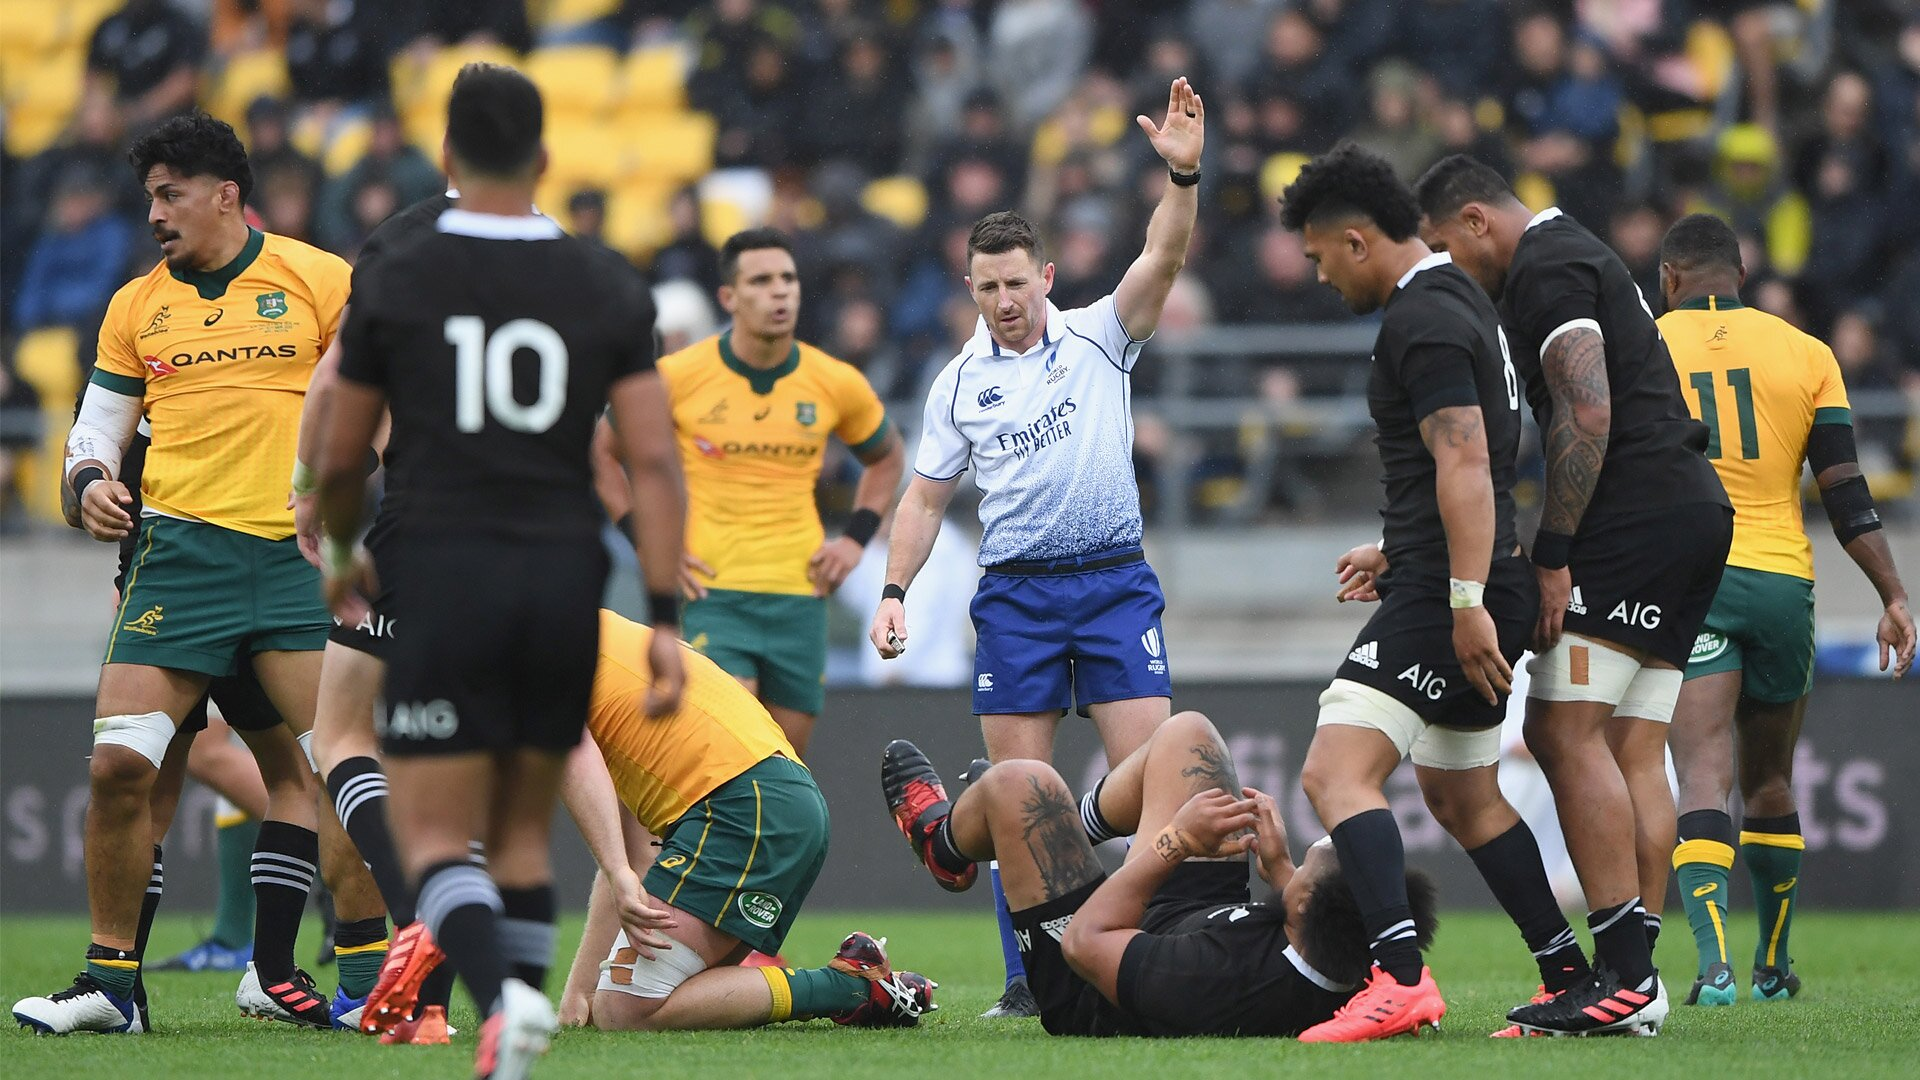 'One of the bigger talking moments were some of the late hits, off-the-ball incidents and that': All Blacks coaches unhappy with Australian aggression